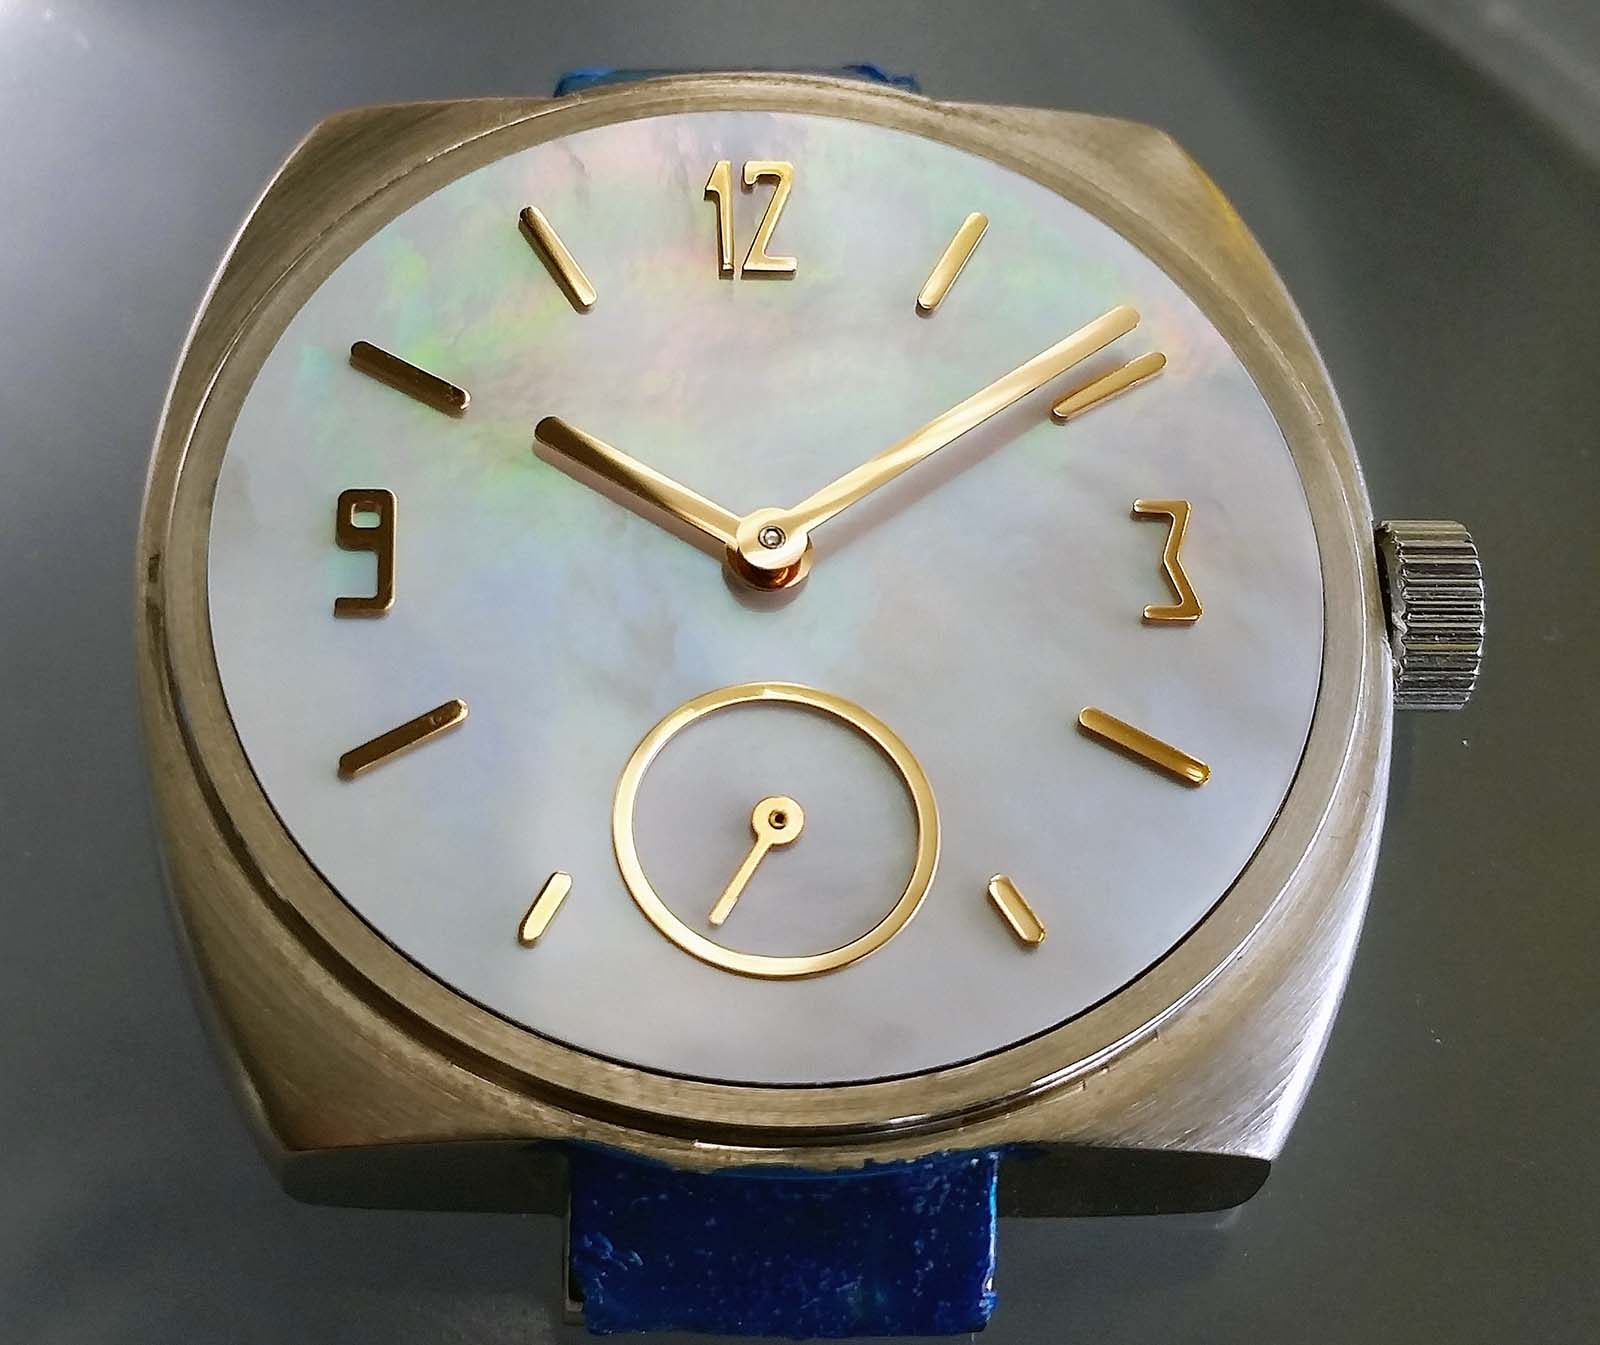 KHWCC dial and case